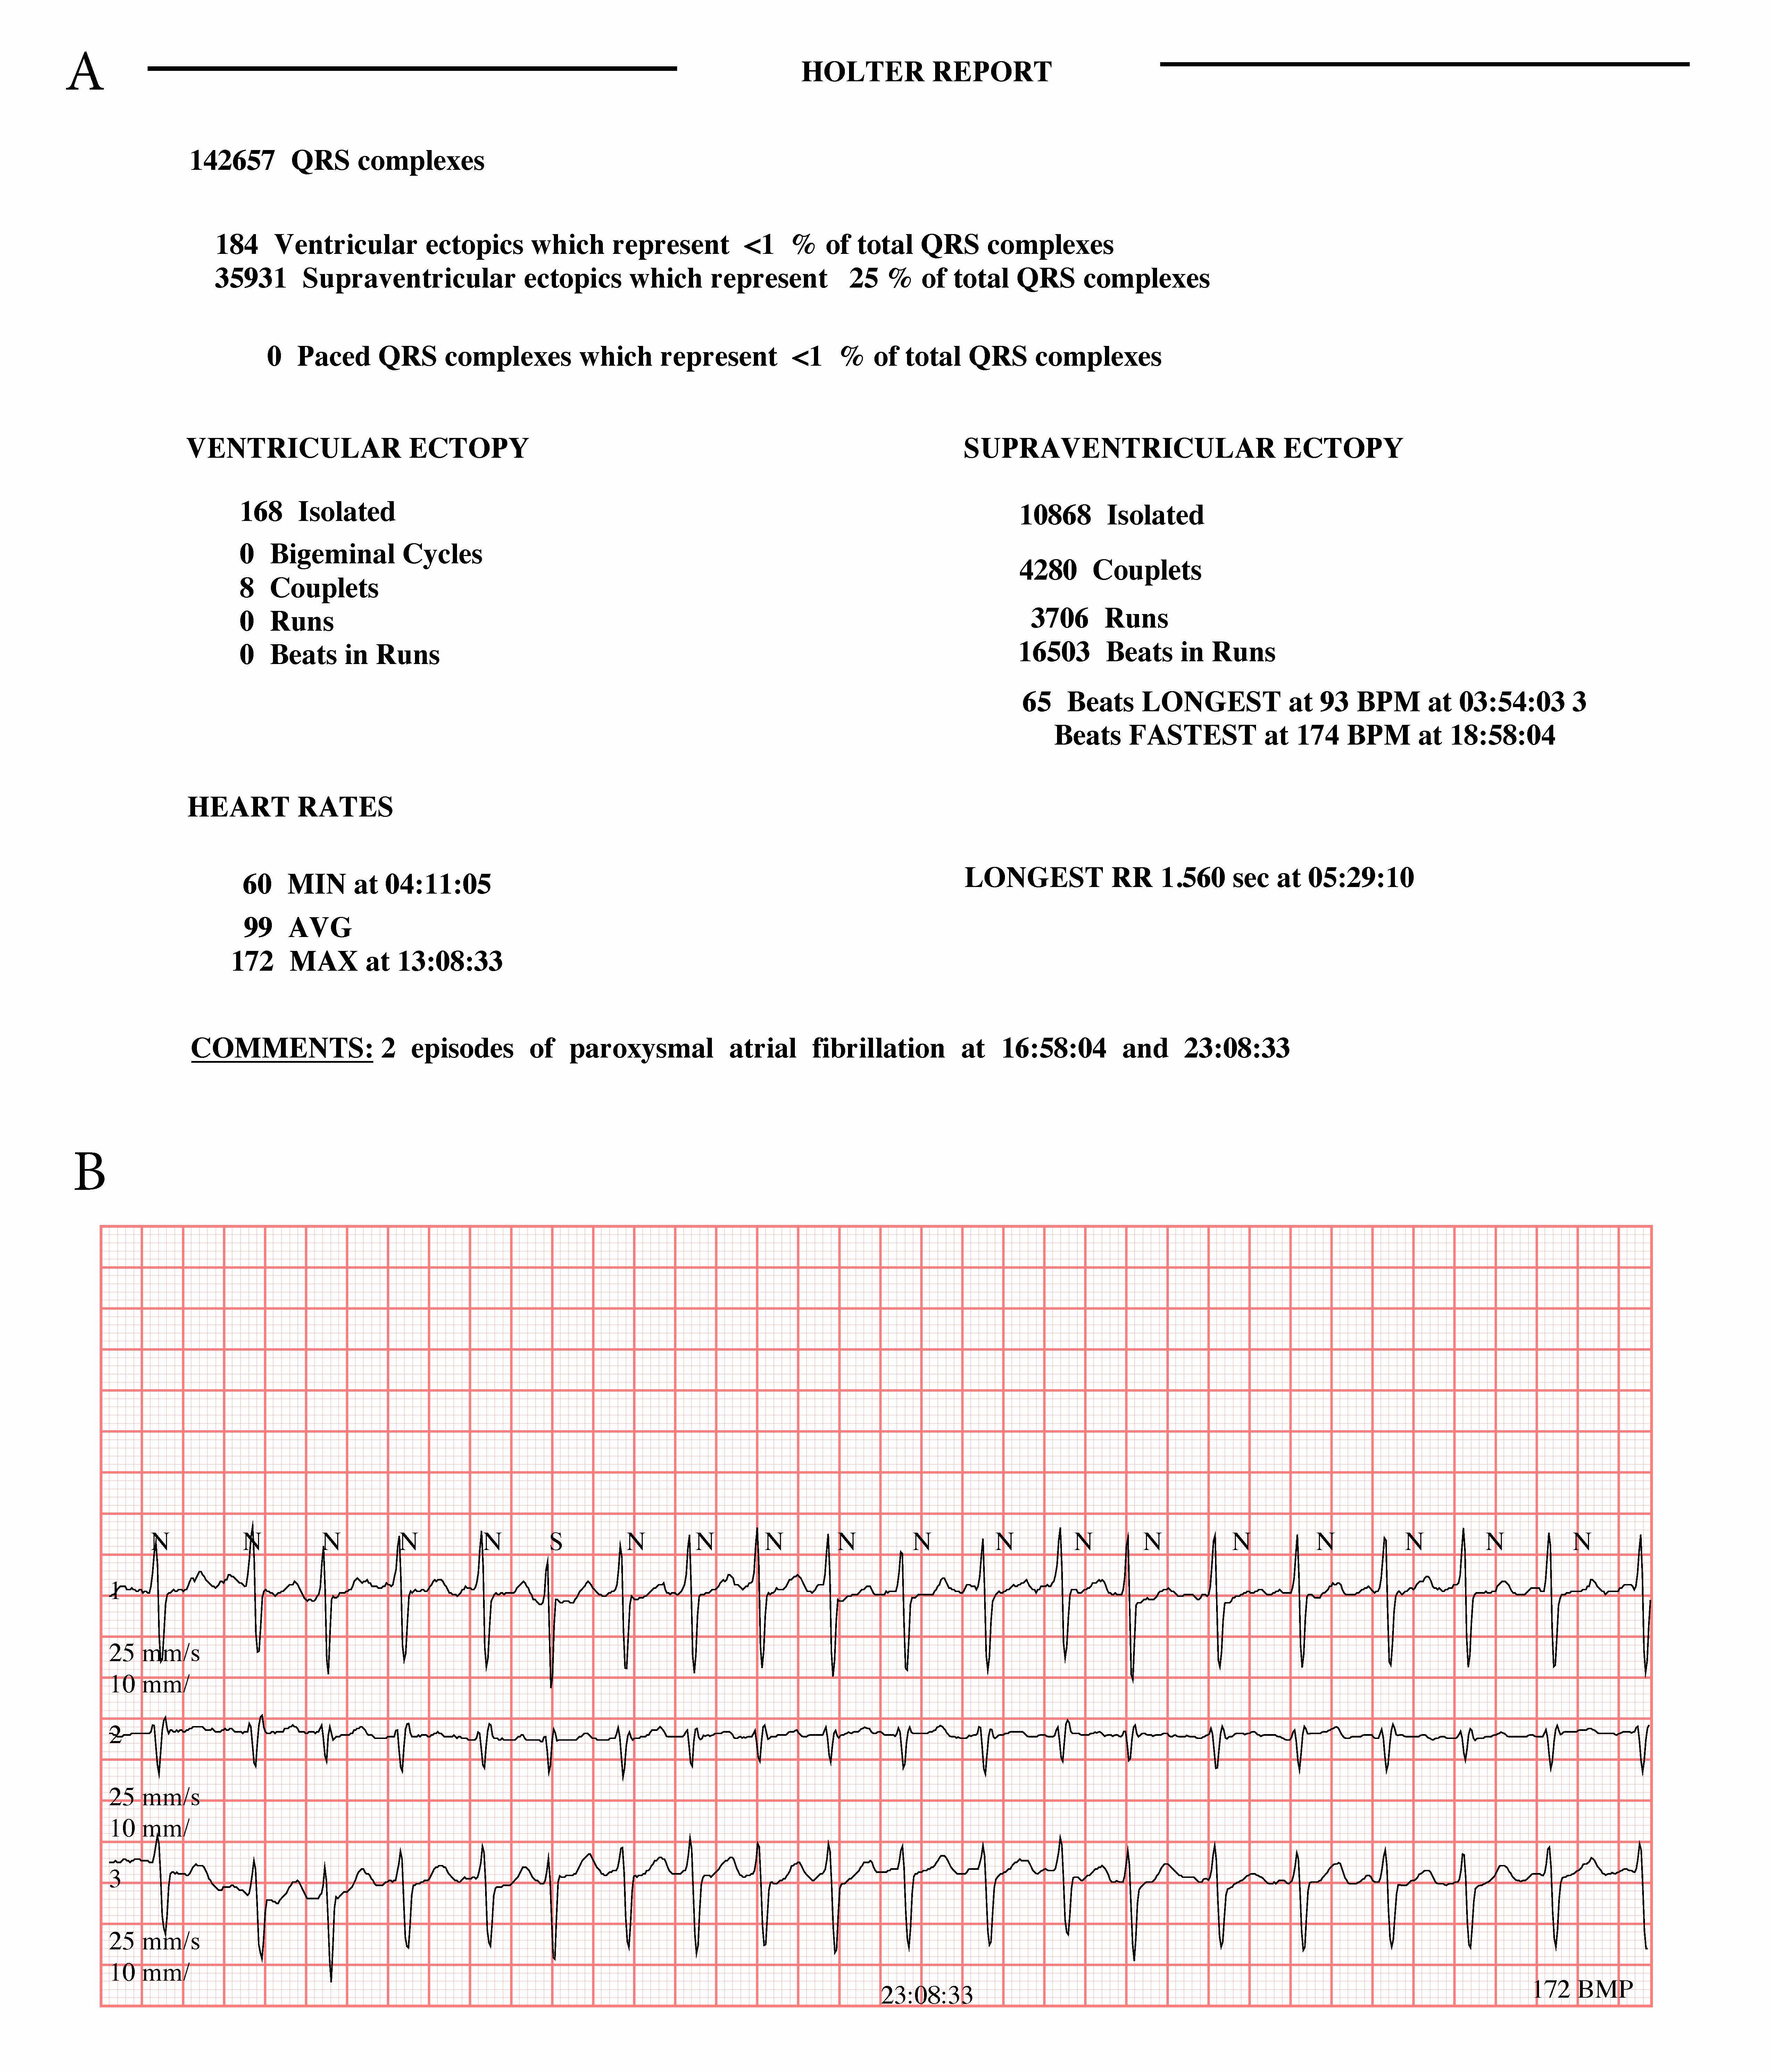 Investigating palpitations: the role of Holter monitoring